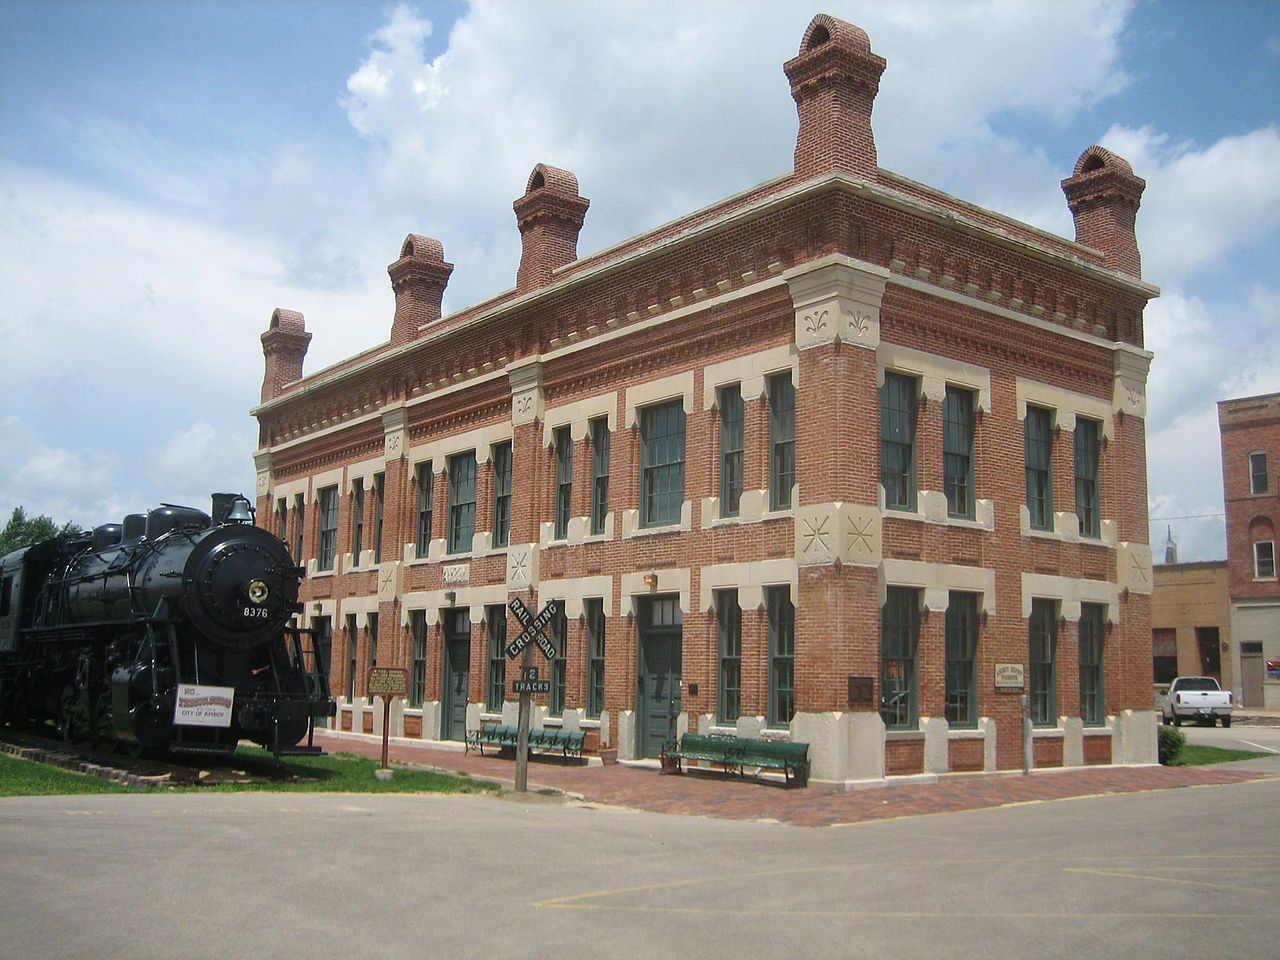 Illinois lee county lee - Amboy Illinois Central Depot In Lee County Illinois Places Across The U S Pinterest Illinois